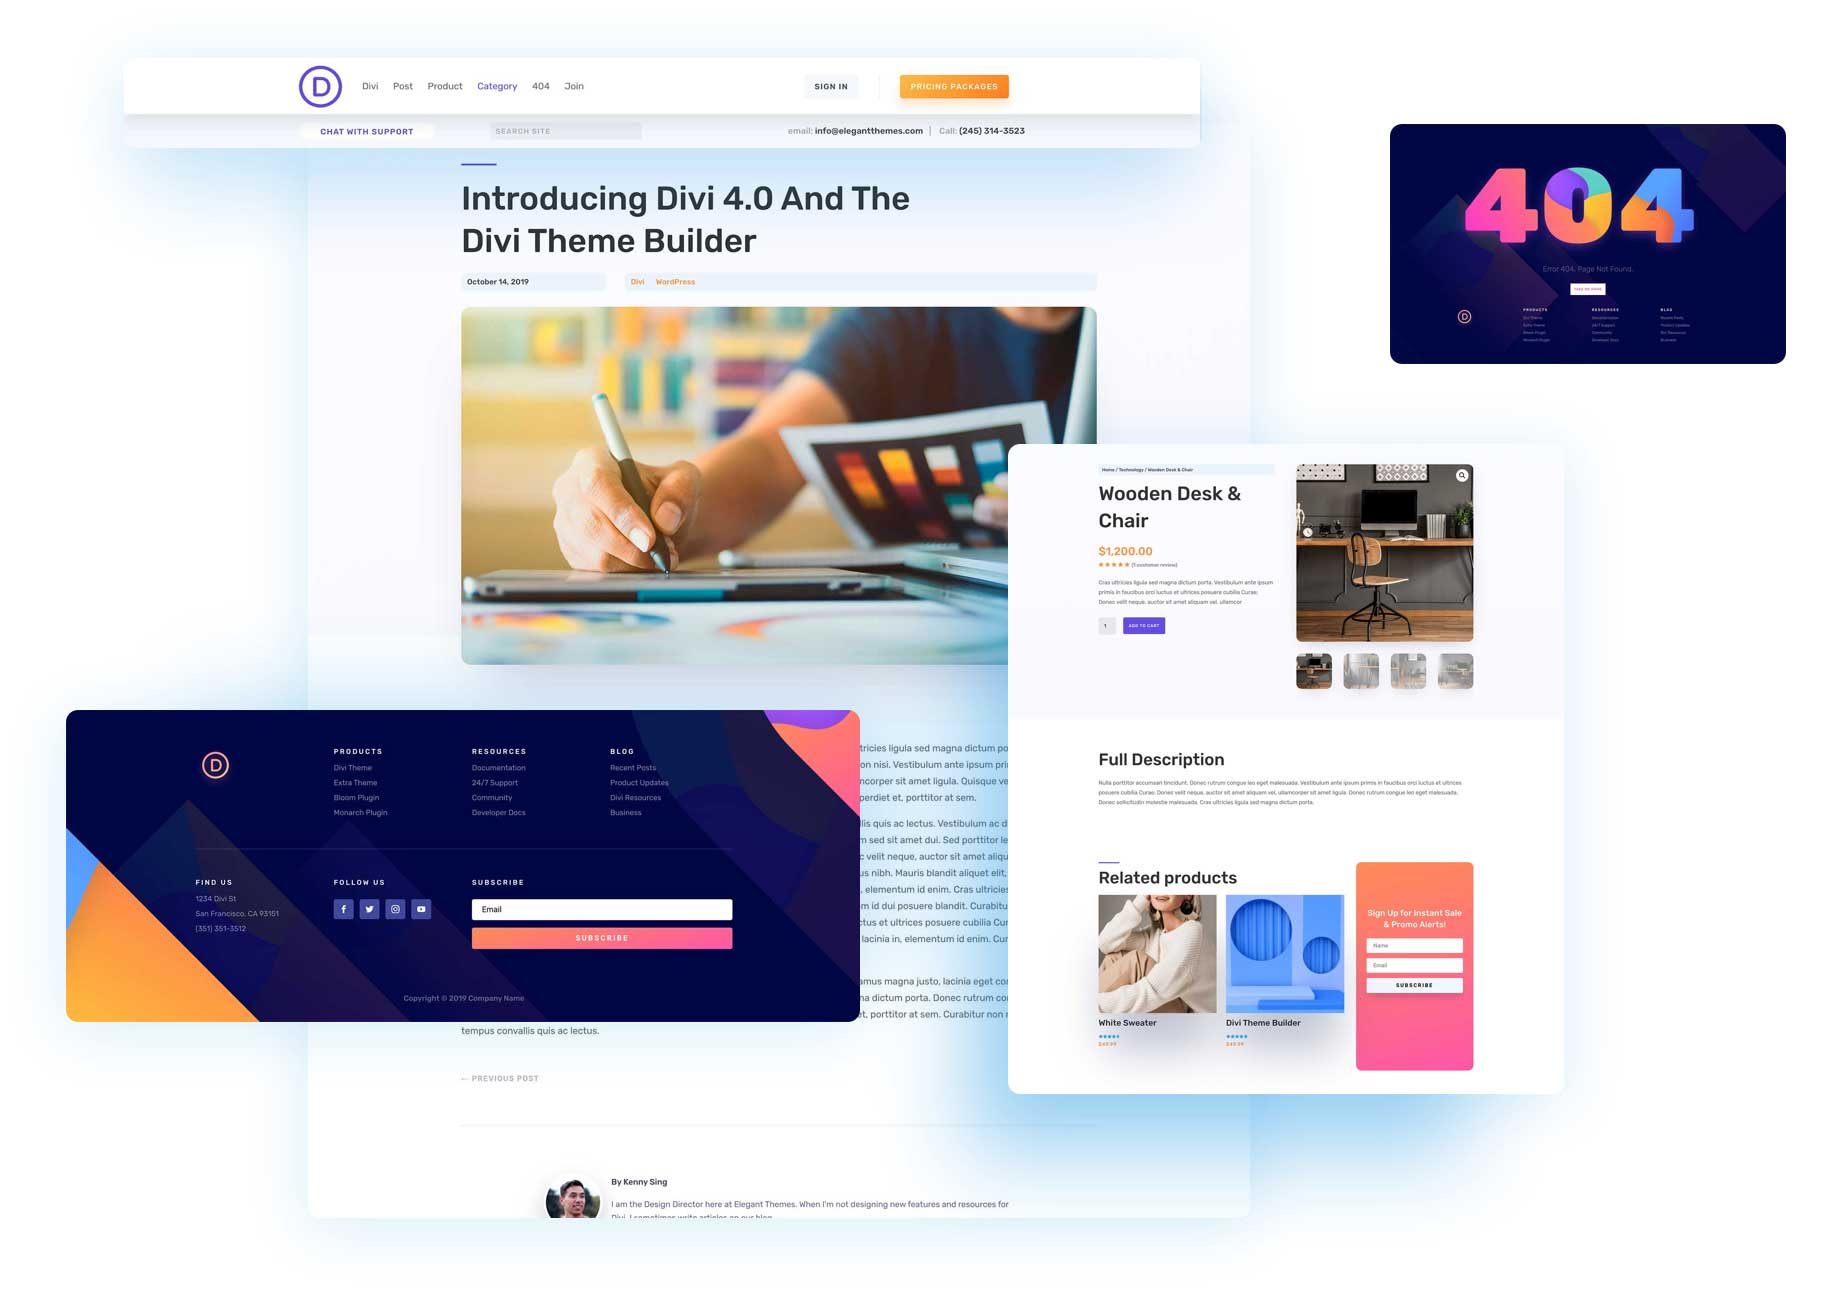 Download The Fifth Free Theme Builder Pack For Divi